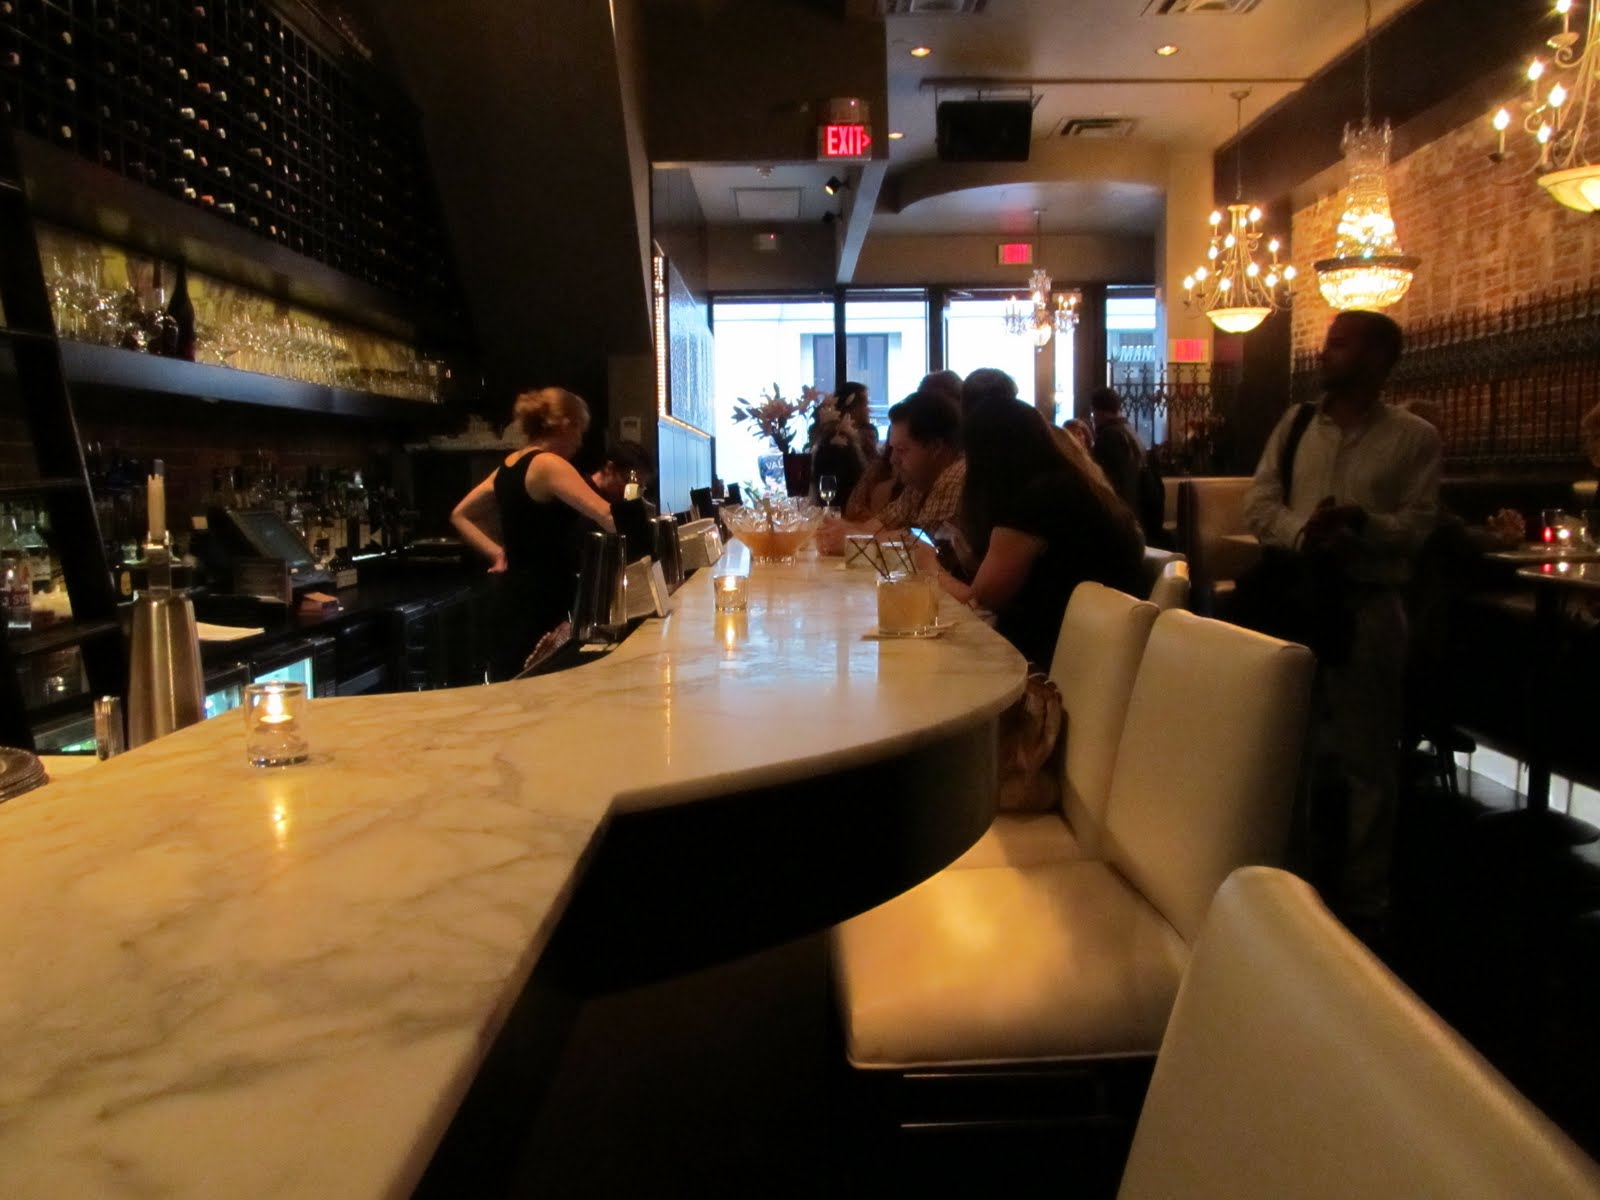 Cucina Twist Restaurant South Kingstown The Boston Foodie 49 Social